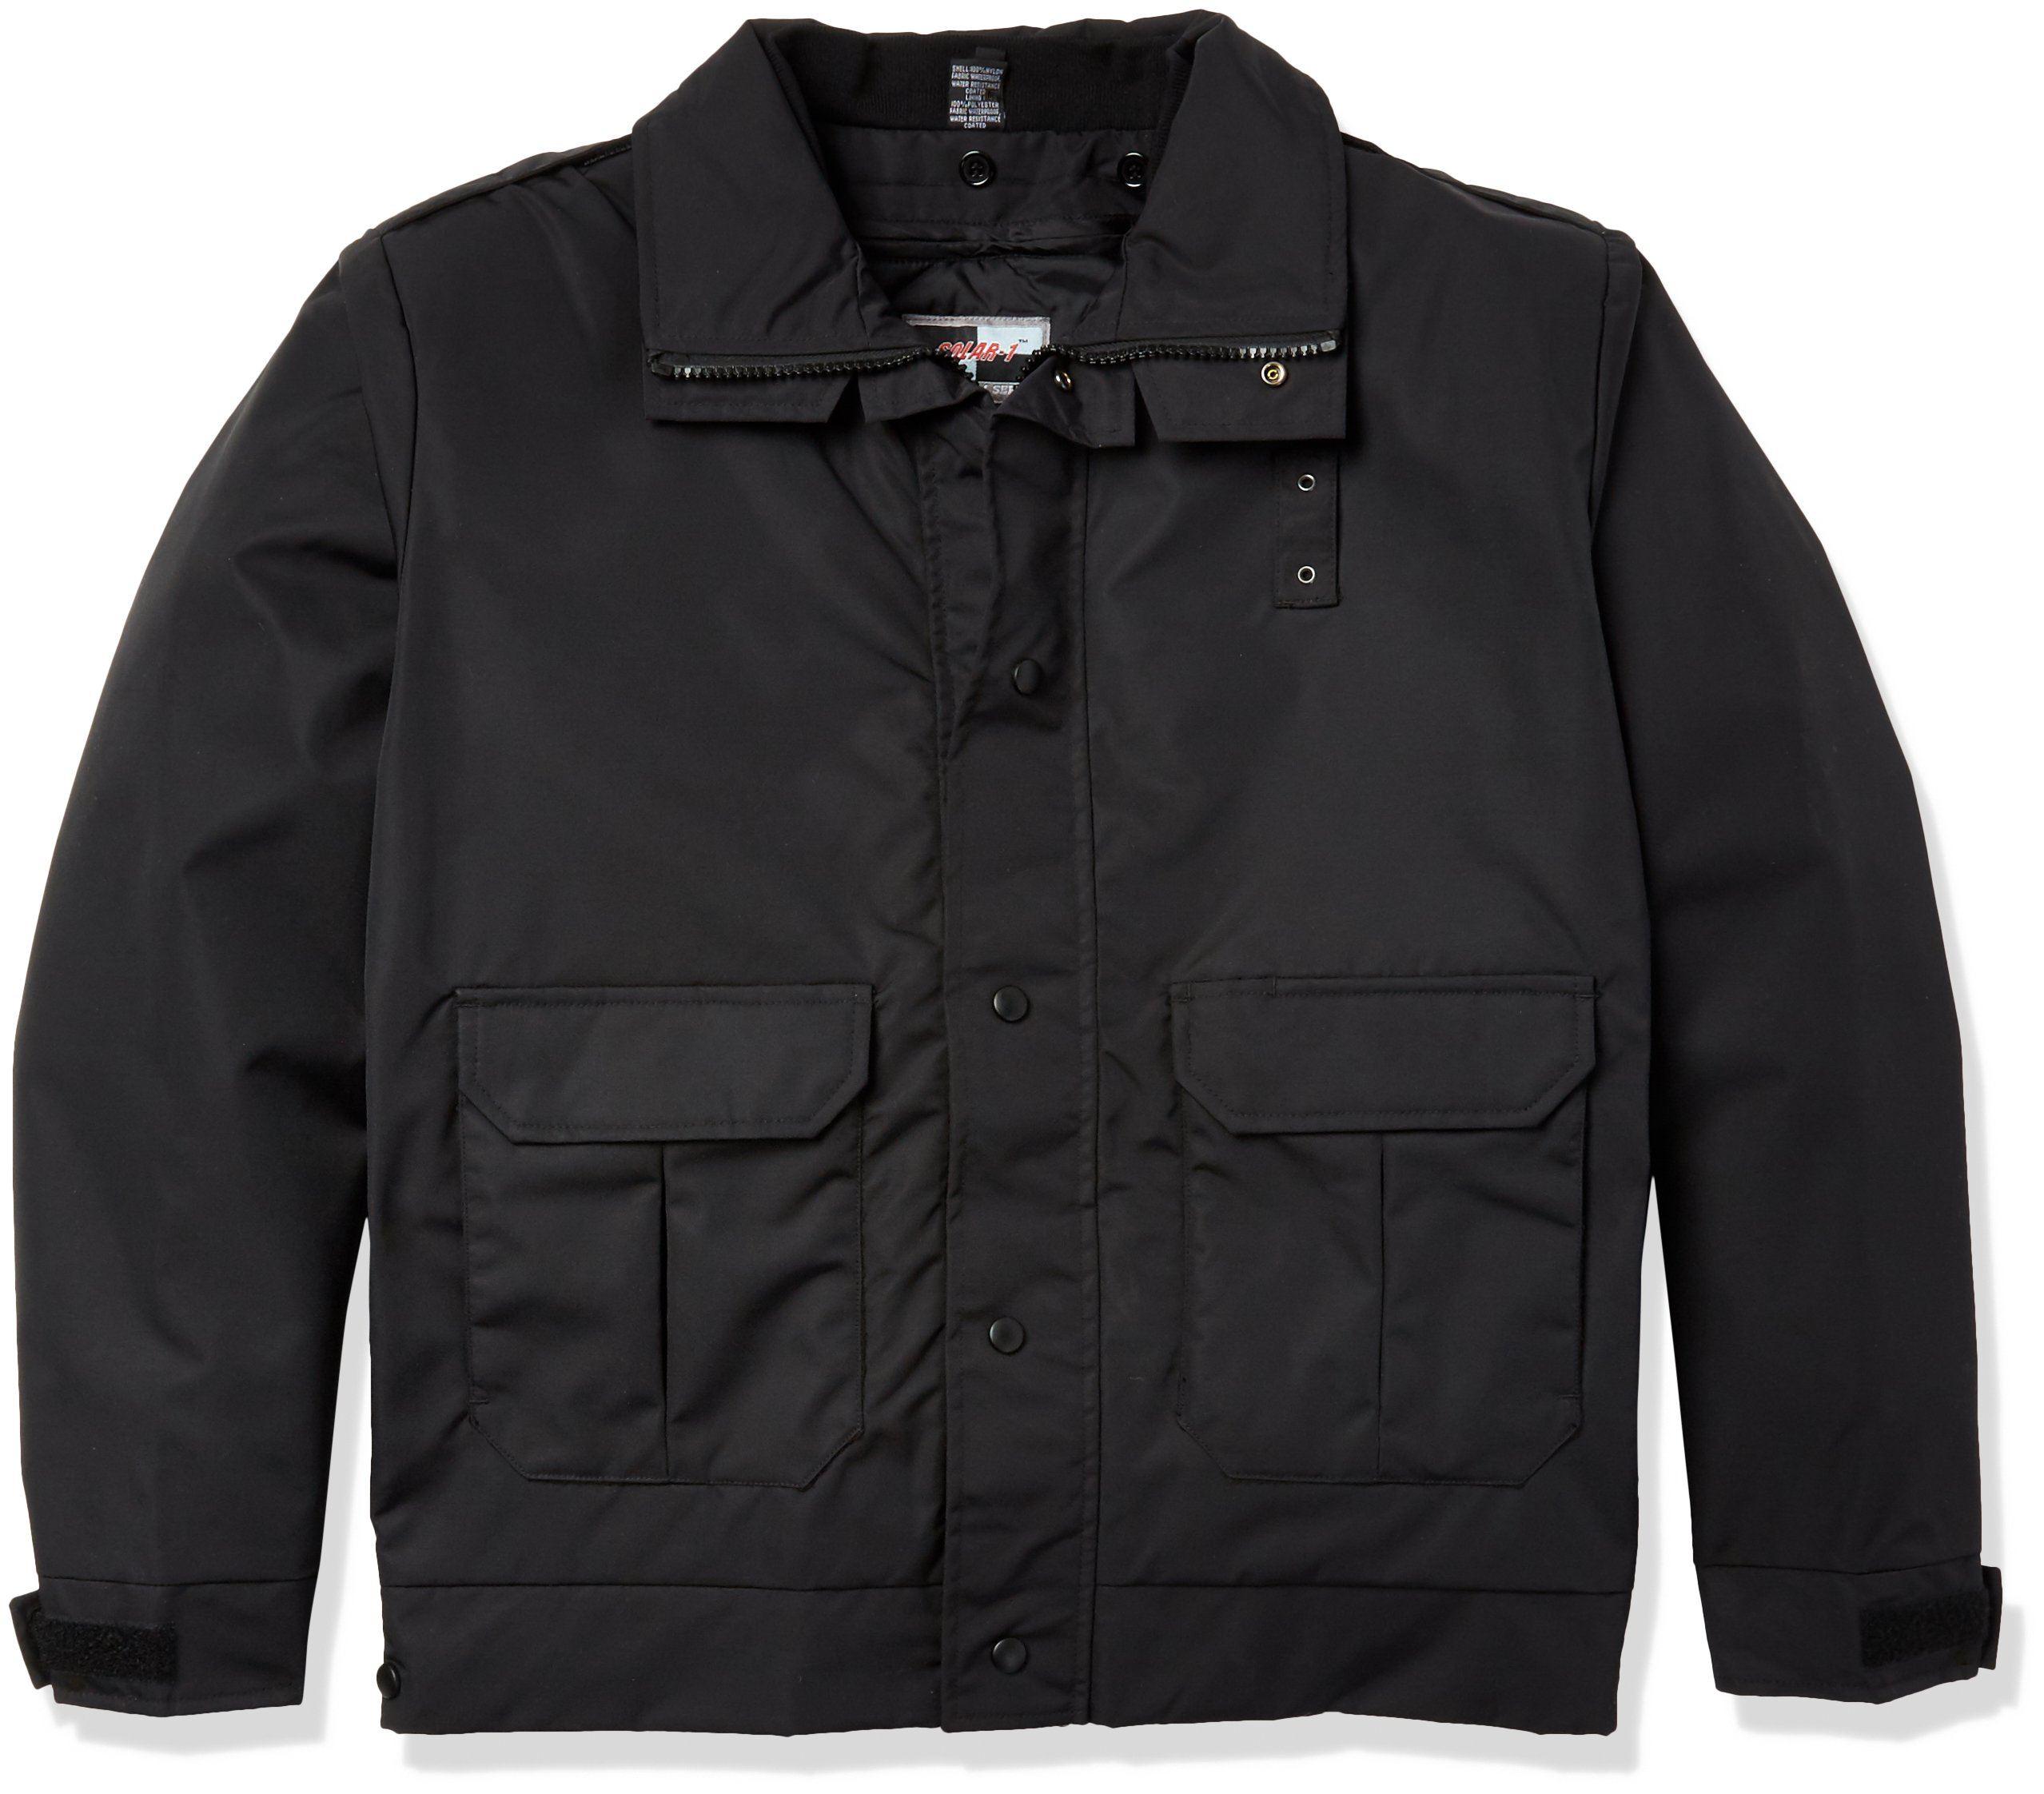 Solar 1 Clothing PD01 Duty Jacket Designed for Comfort, Black, XL by Solar 1 Clothing